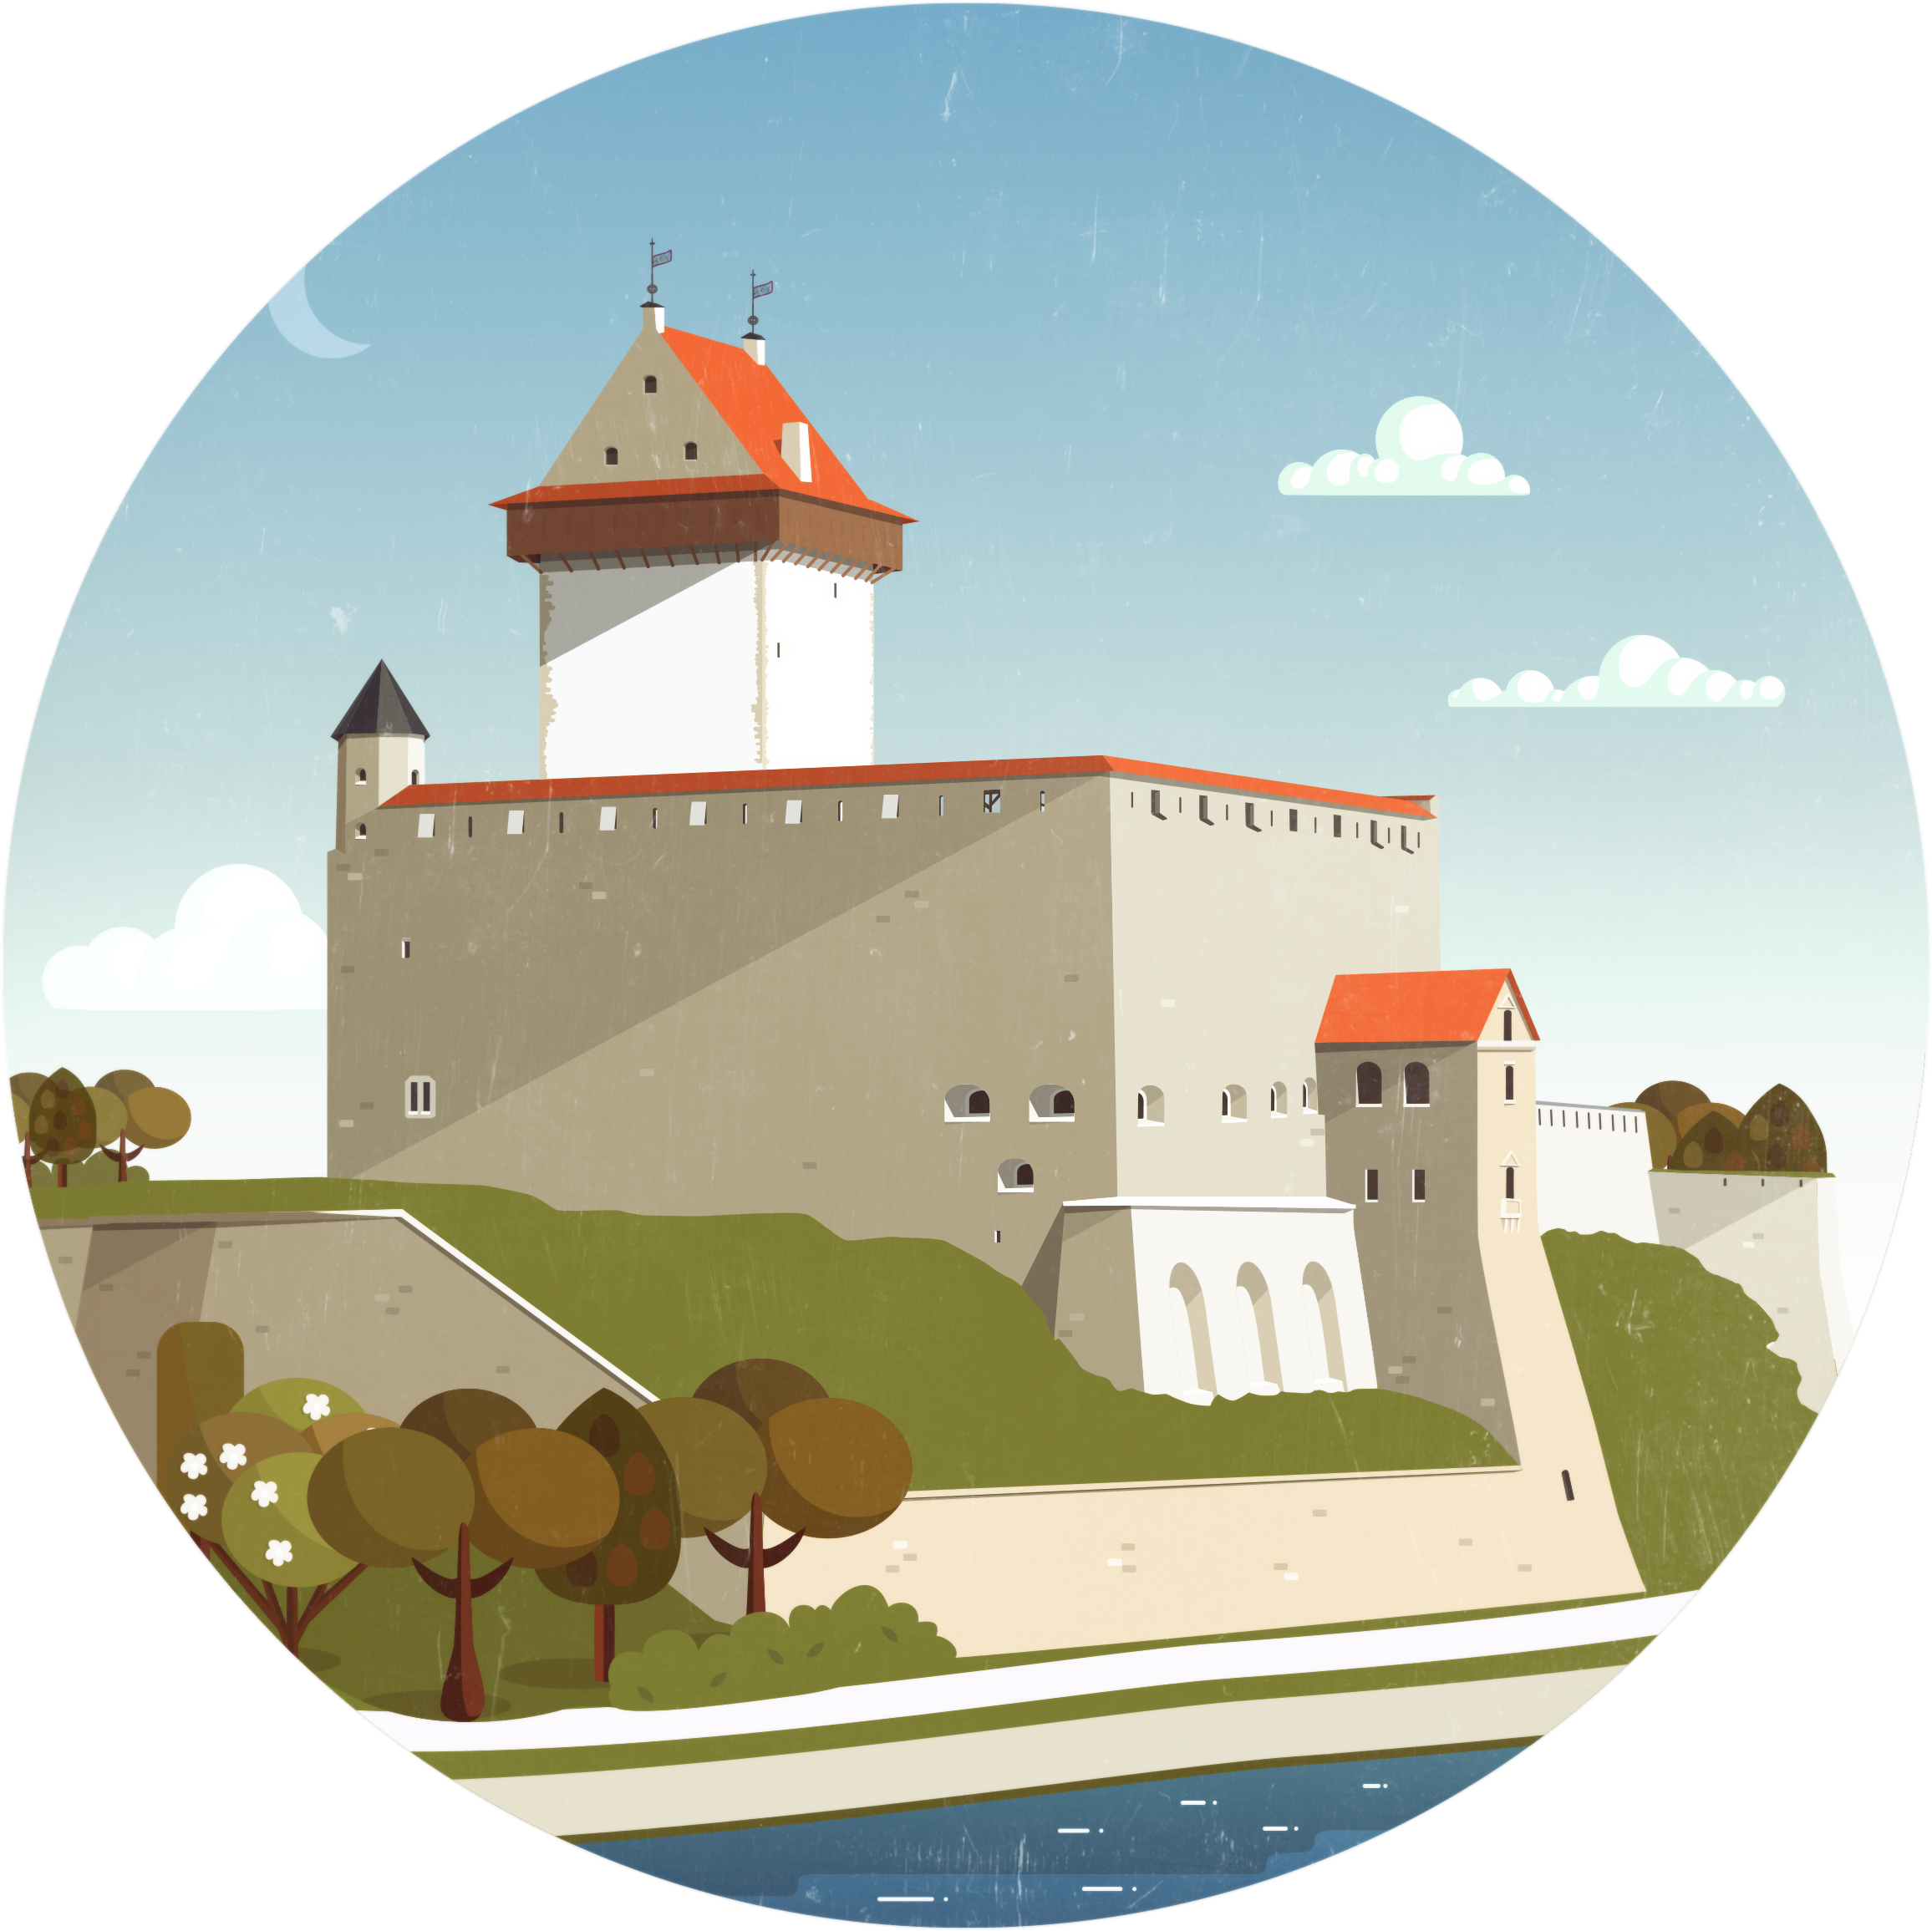 http://tourism.narva.ee/upload/Castle.png